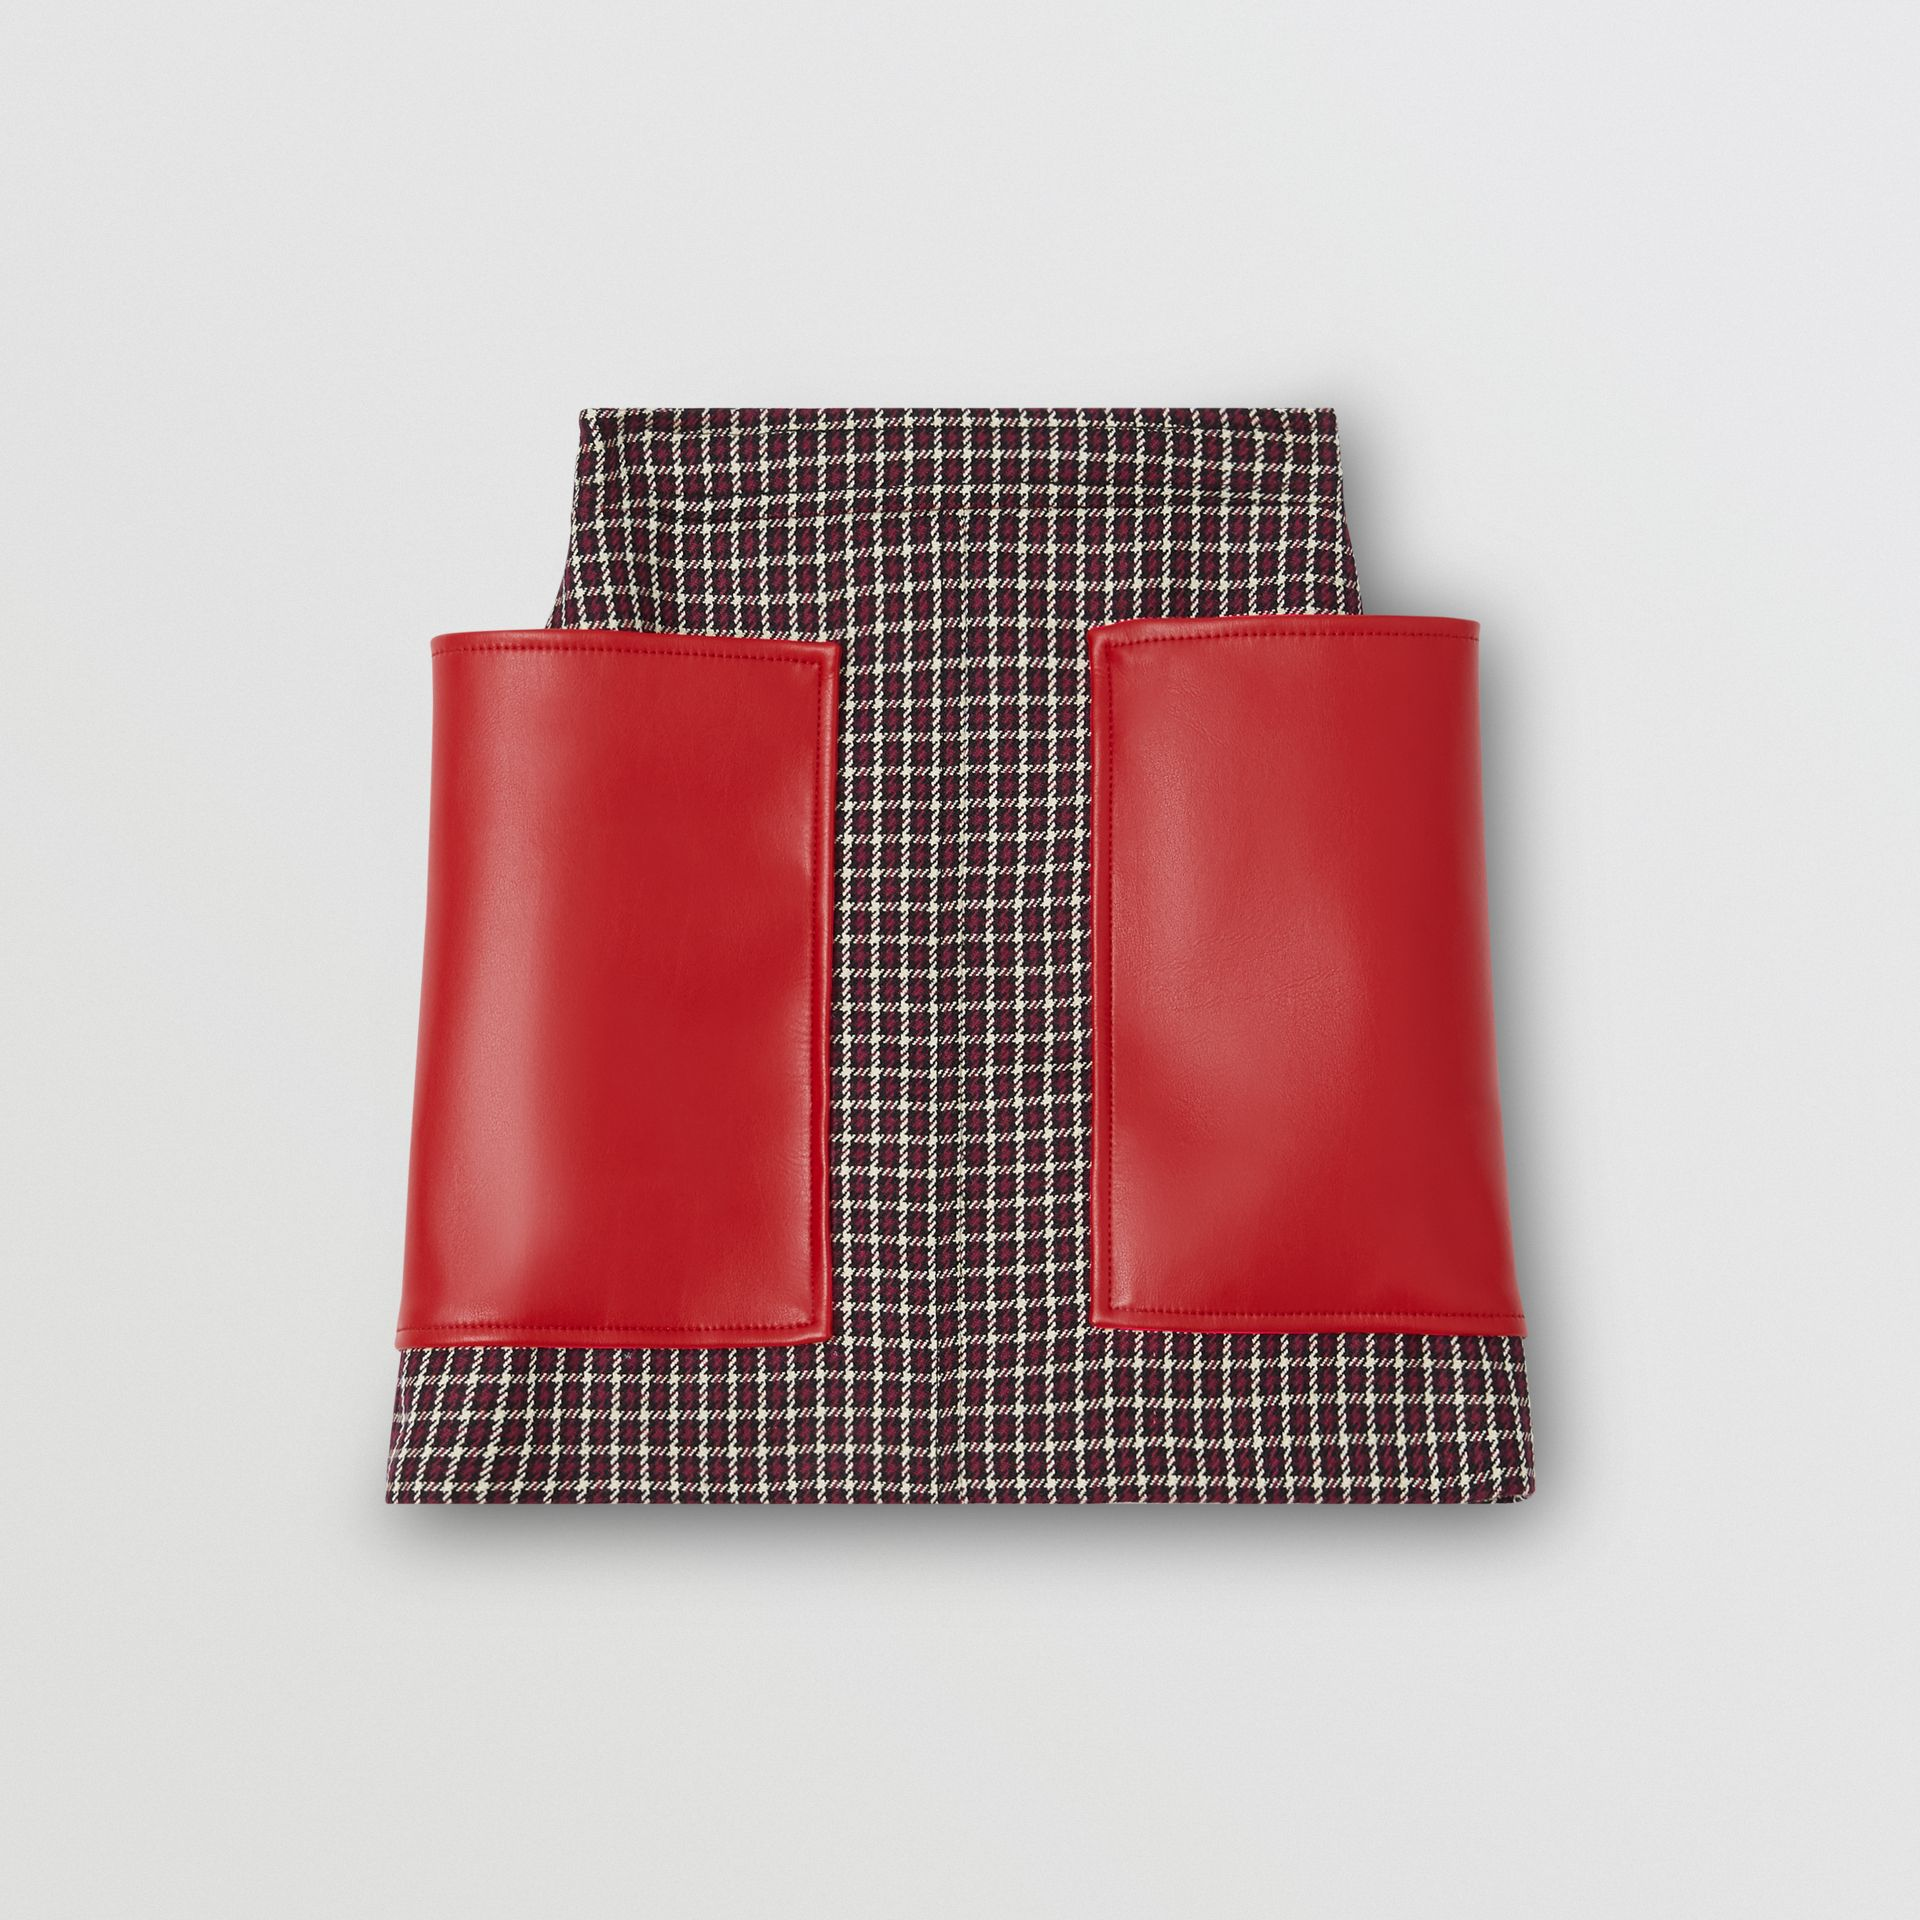 Pocket Detail Tartan Wool Mini Skirt in Bordeaux - Women | Burberry - gallery image 3